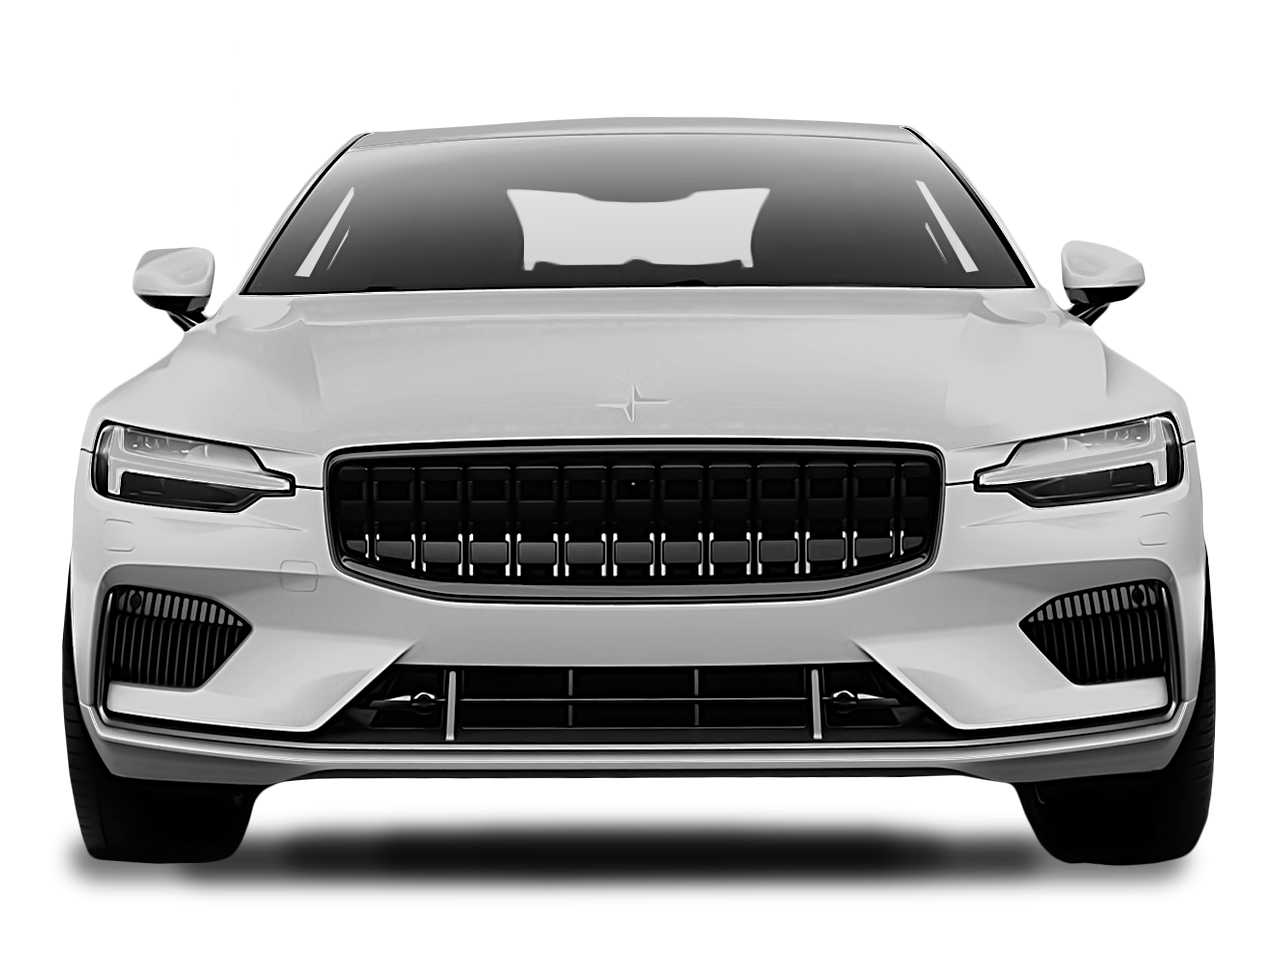 Front view of the Polestar 1